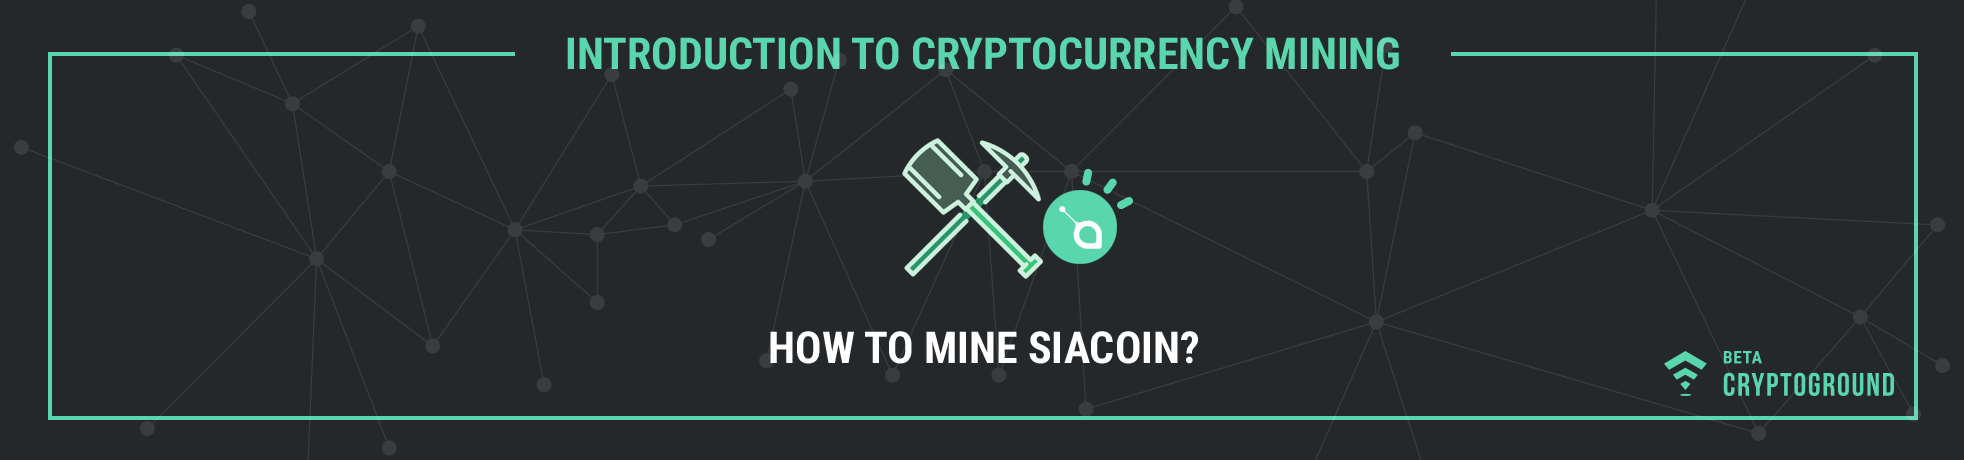 Solo Zcash Mining Siacoin 2019 Prediction – Vigesima